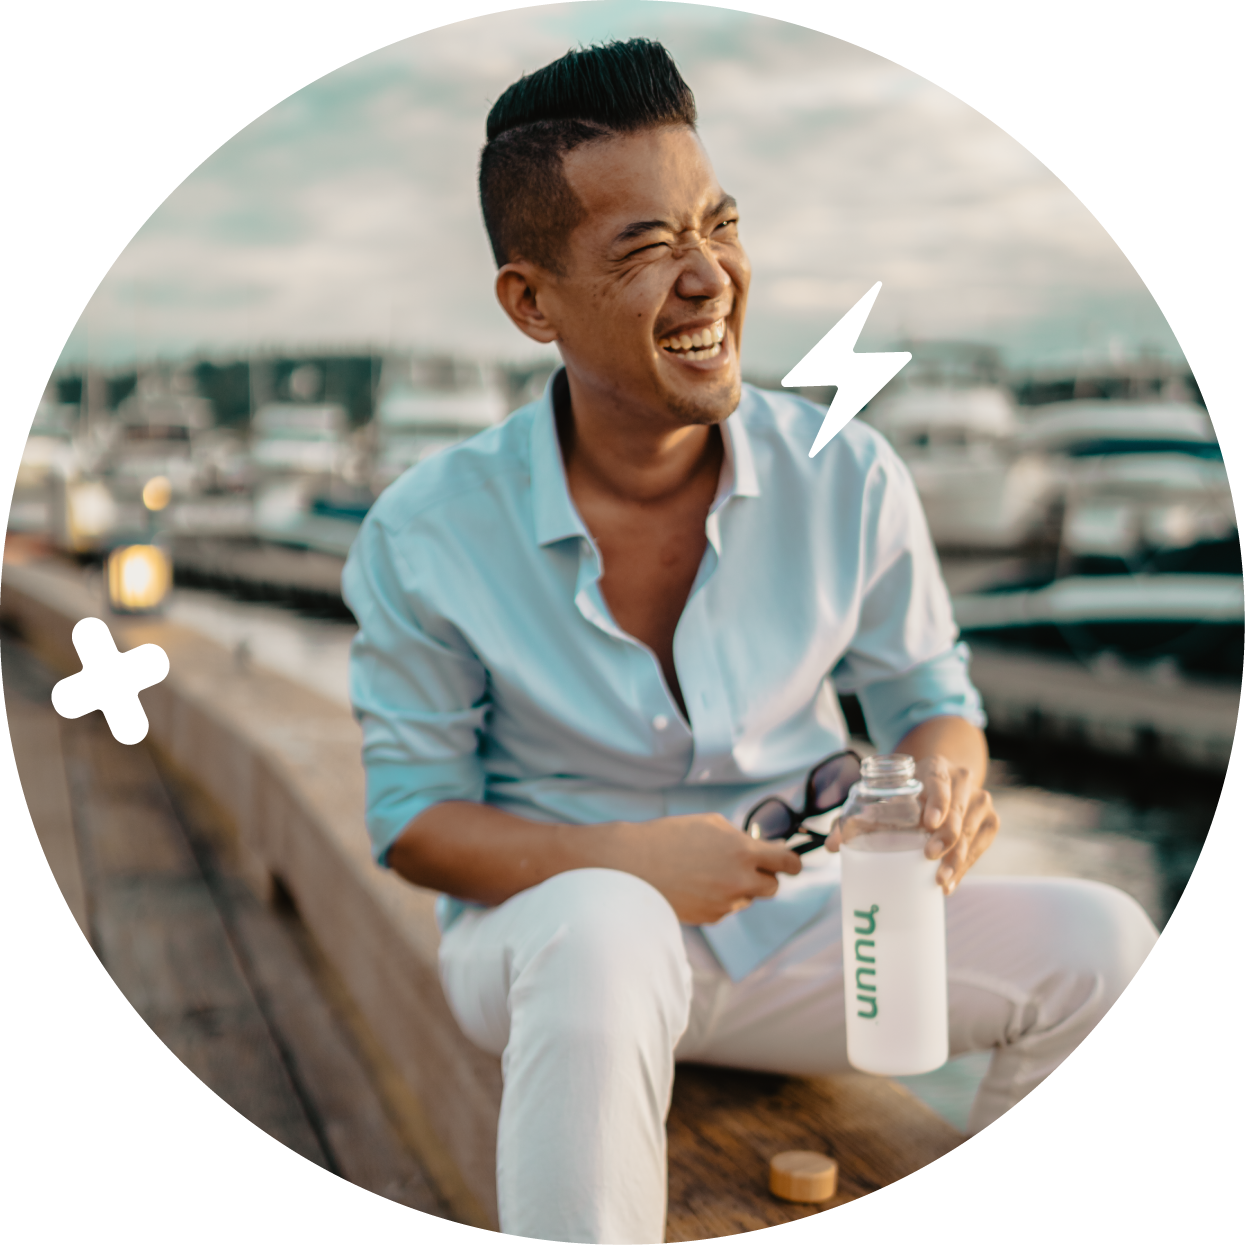 Man sitting on a dock laughing and holding a water bottle